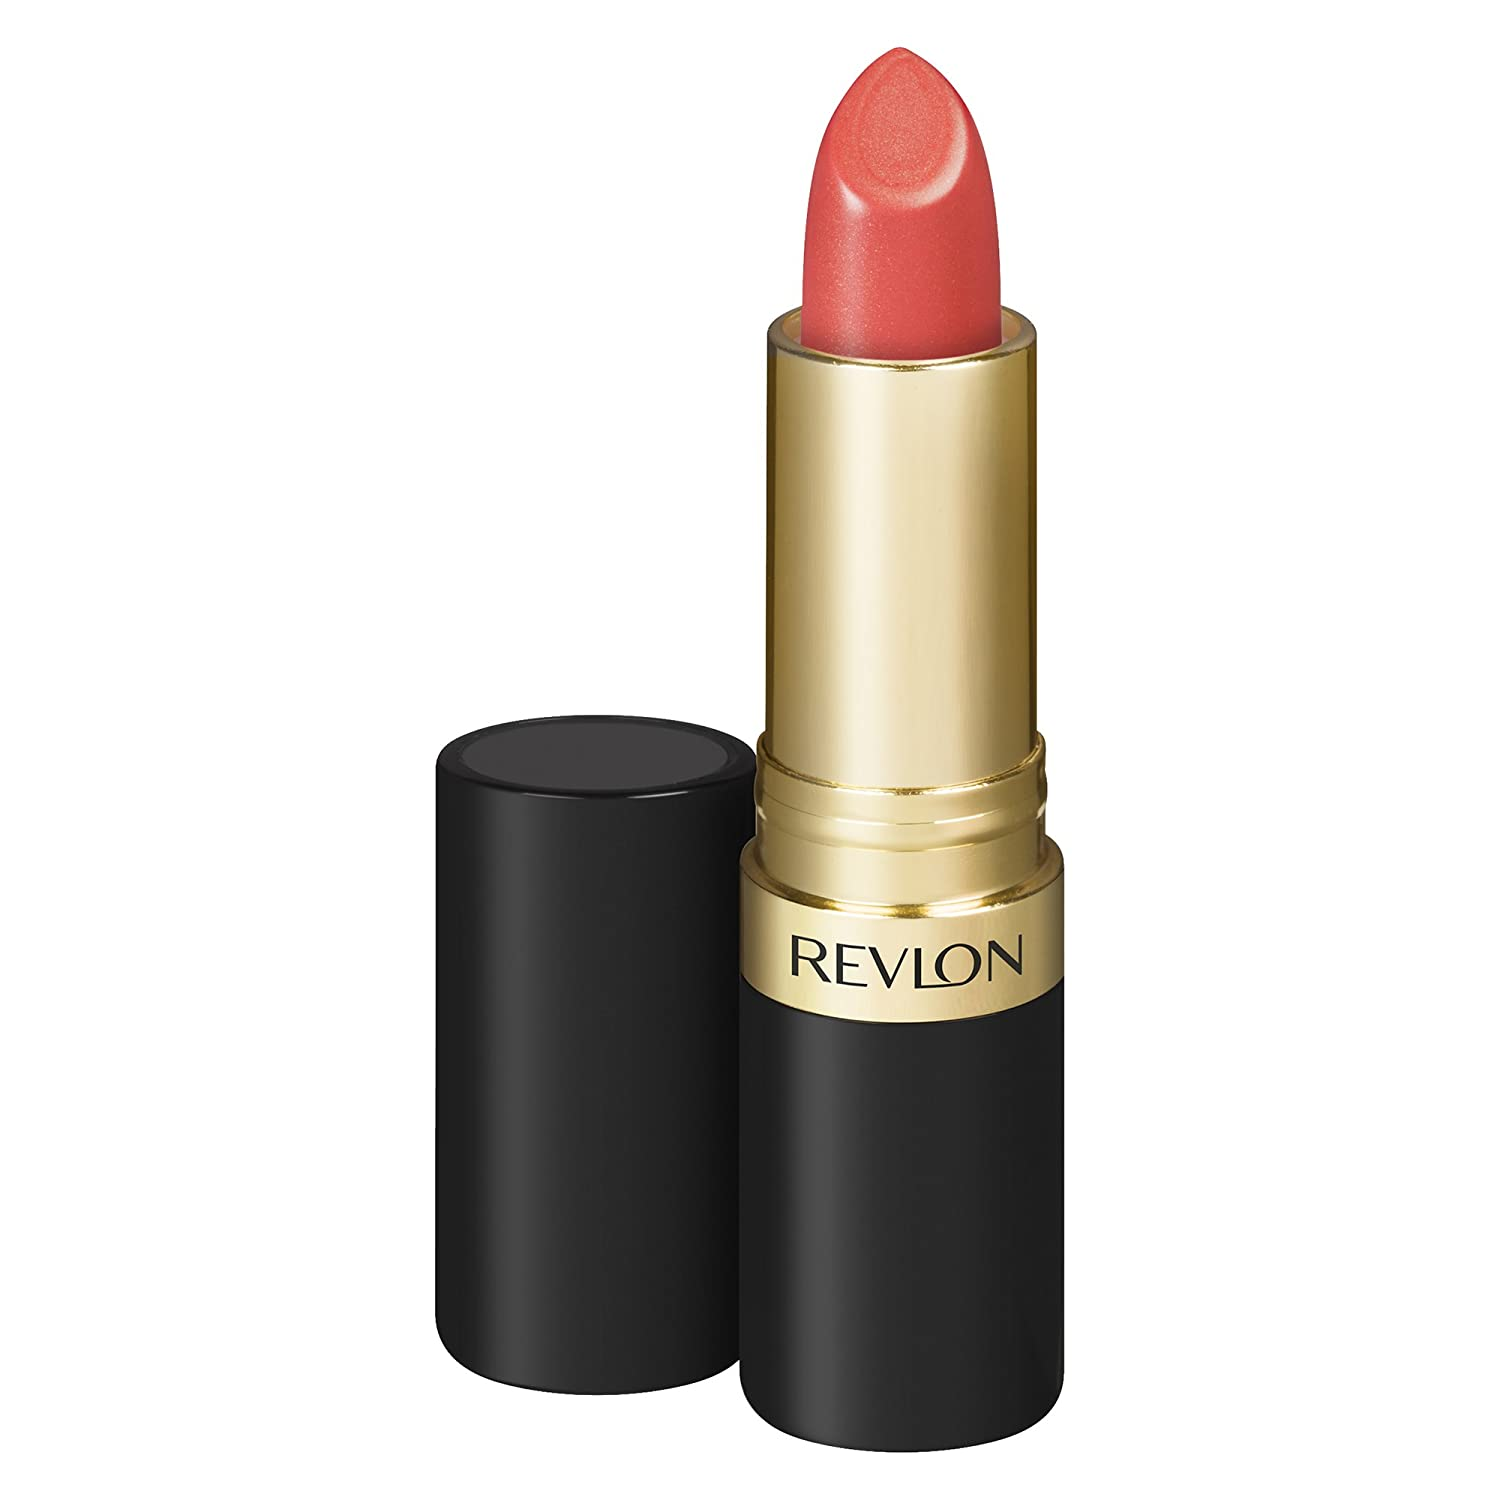 Revlon Super Lustrous Lipstick with Vitamin E and Avocado Oil, Cream Lipstick in Coral, 674 Coral Berry, 0.15 oz